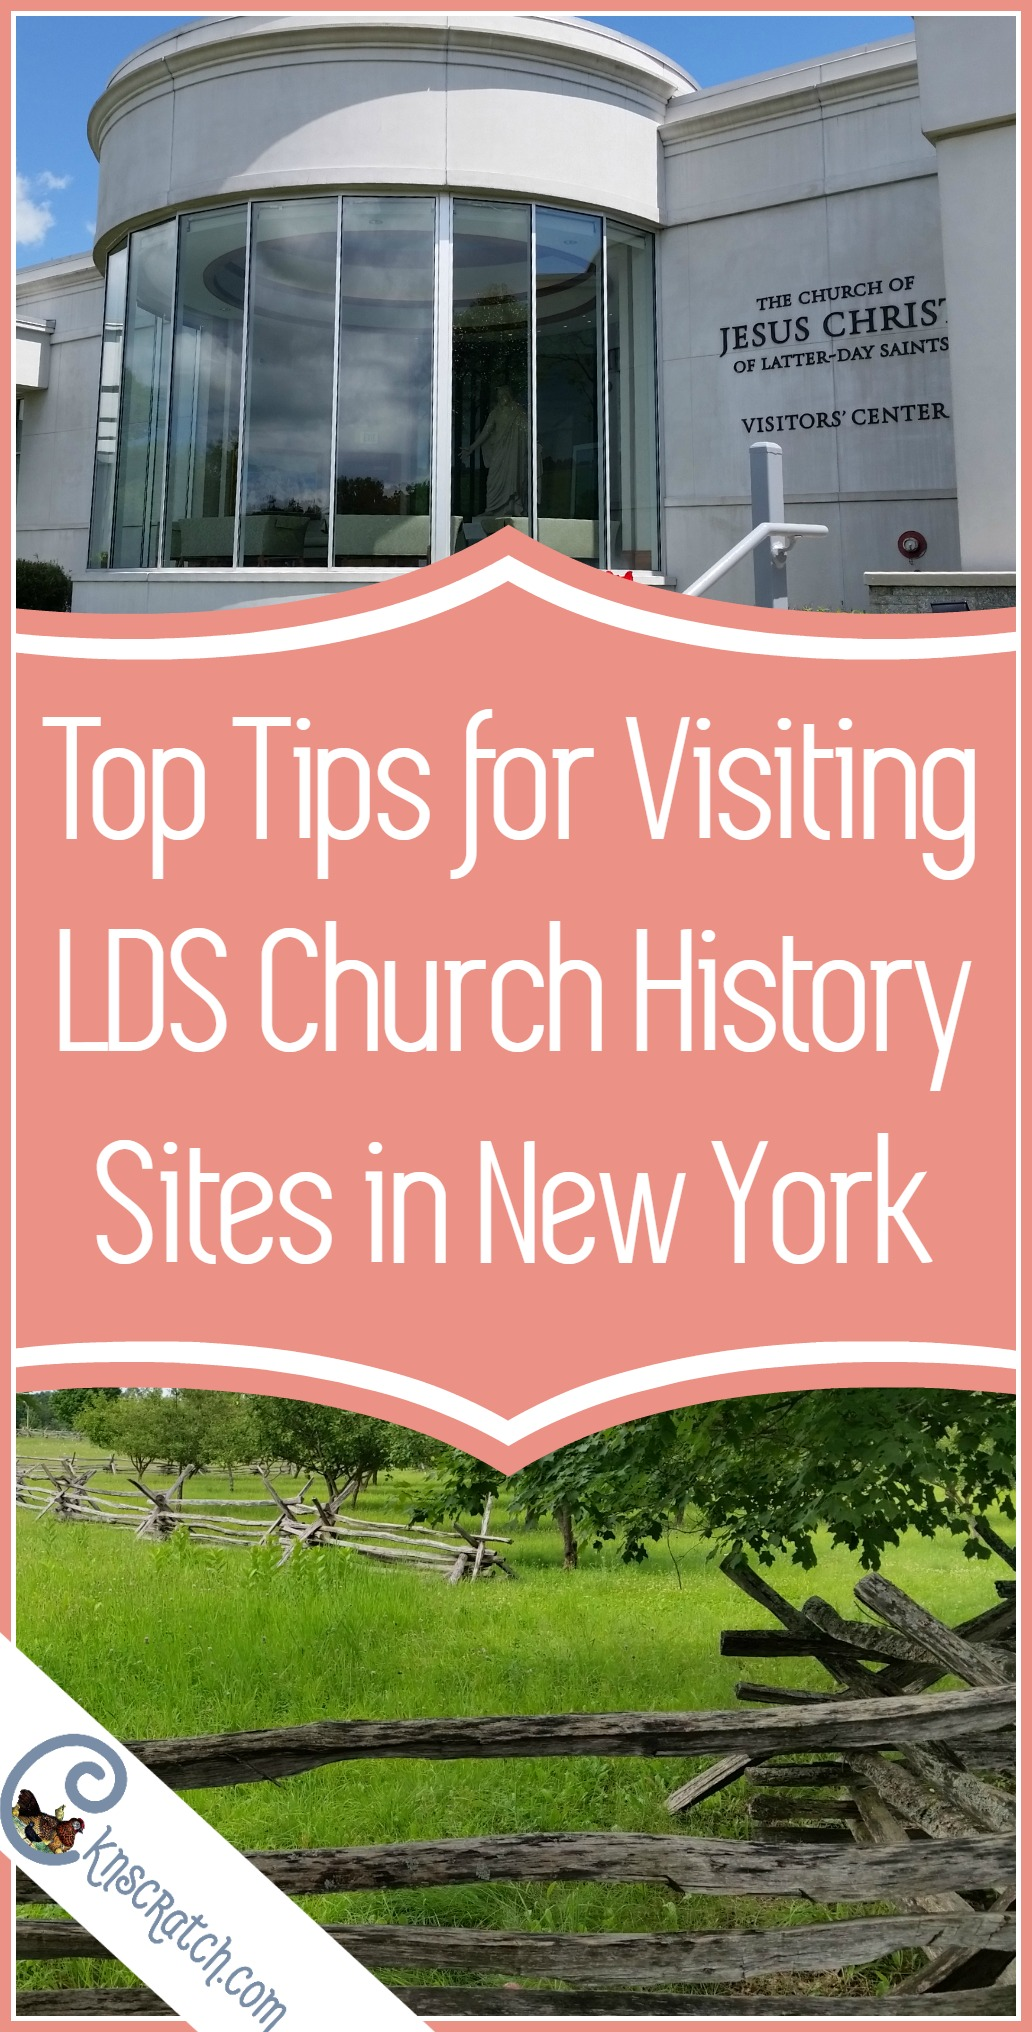 Great tips for visiting LDS church history sites in upstate New York